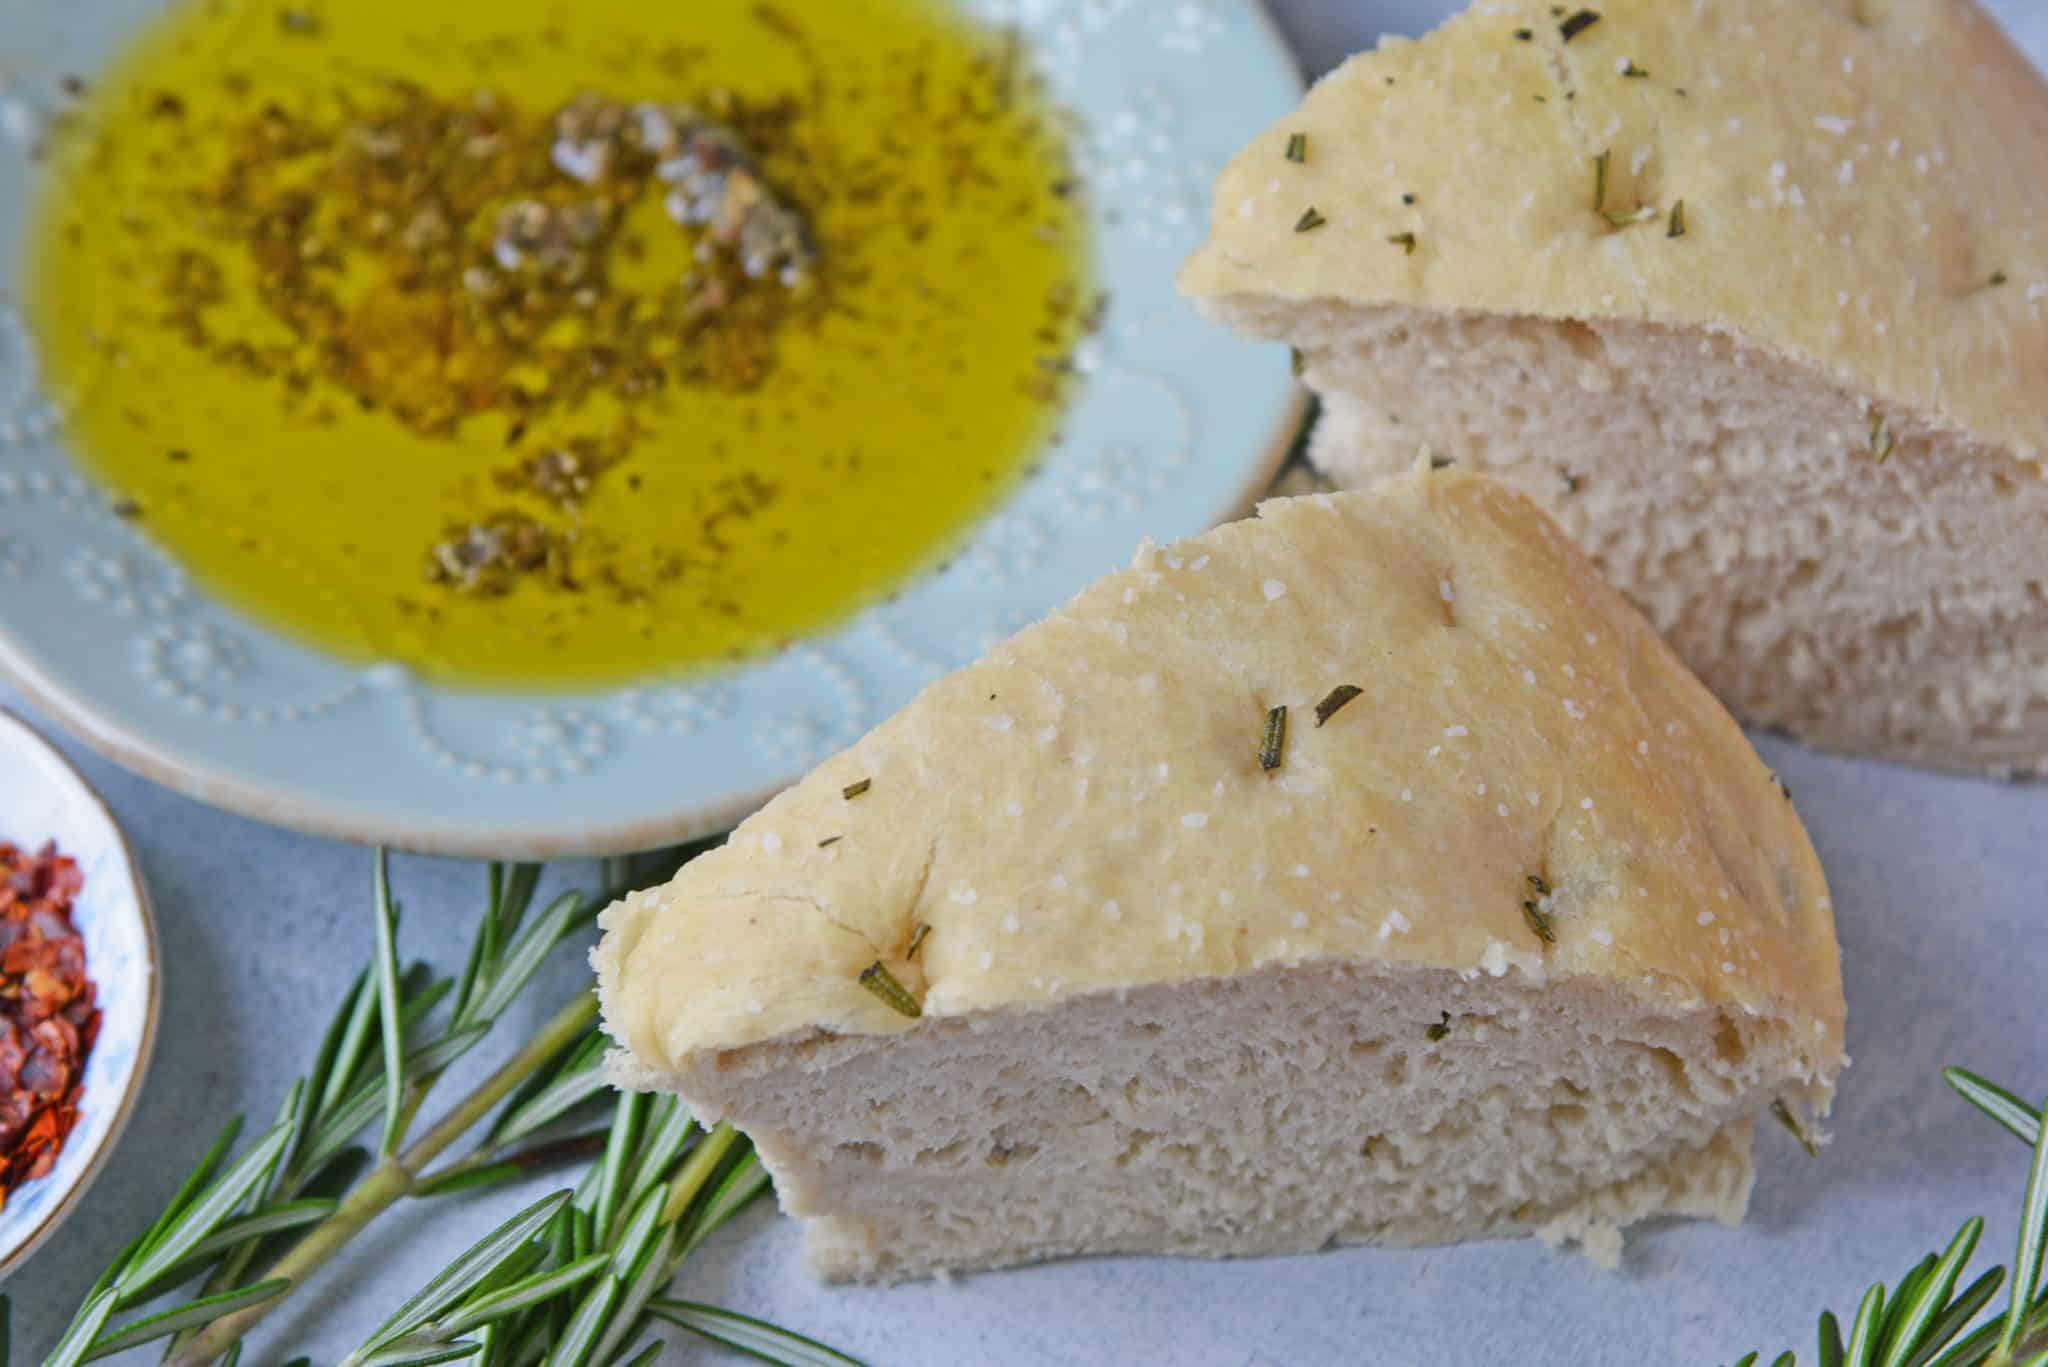 Rosemary Focaccia Bread is a recipe you can be proud of! Pair with homemade butter or olive oil bread dip for the best appetizer.  #focacciabread #easybreadrecipes www.savoryexperiments.com